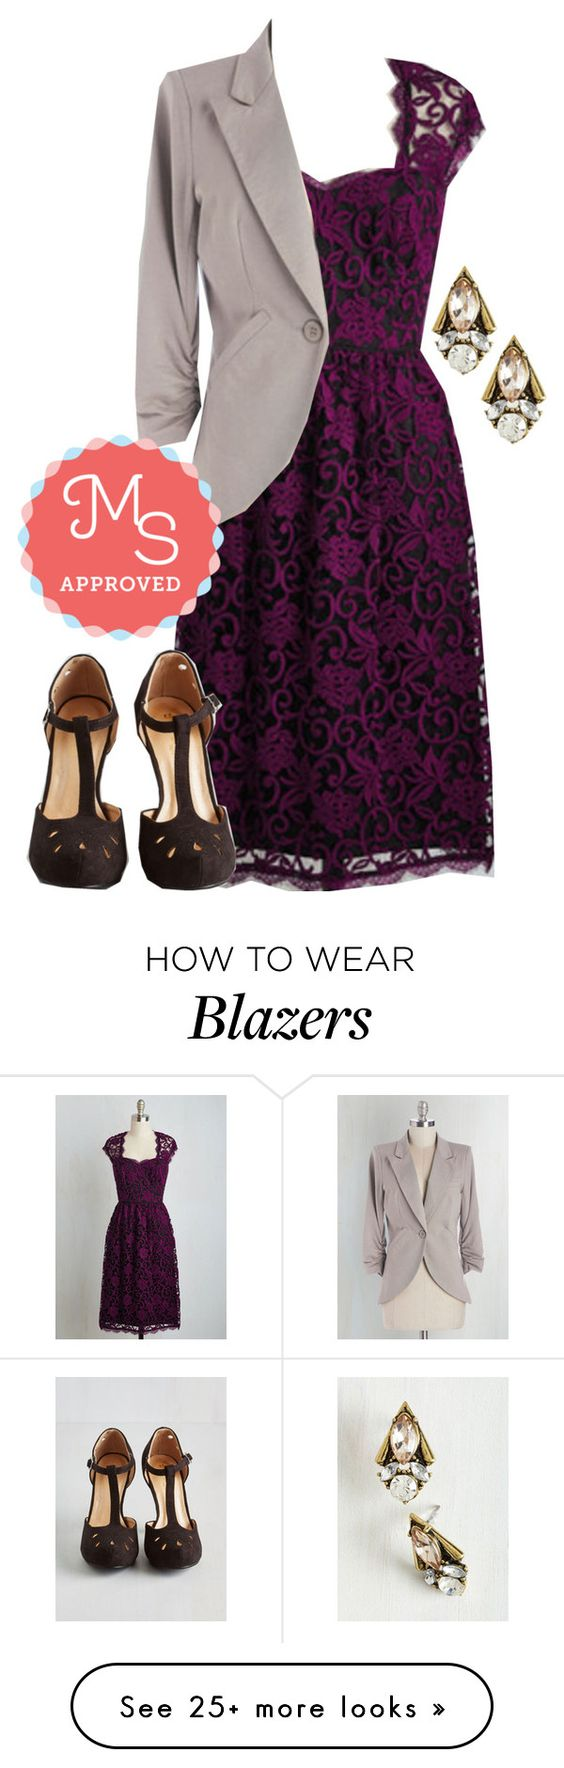 """Collected and Respected Dress"" by modcloth on Polyvore featuring outfit, wedding, modcloth and modstylist"